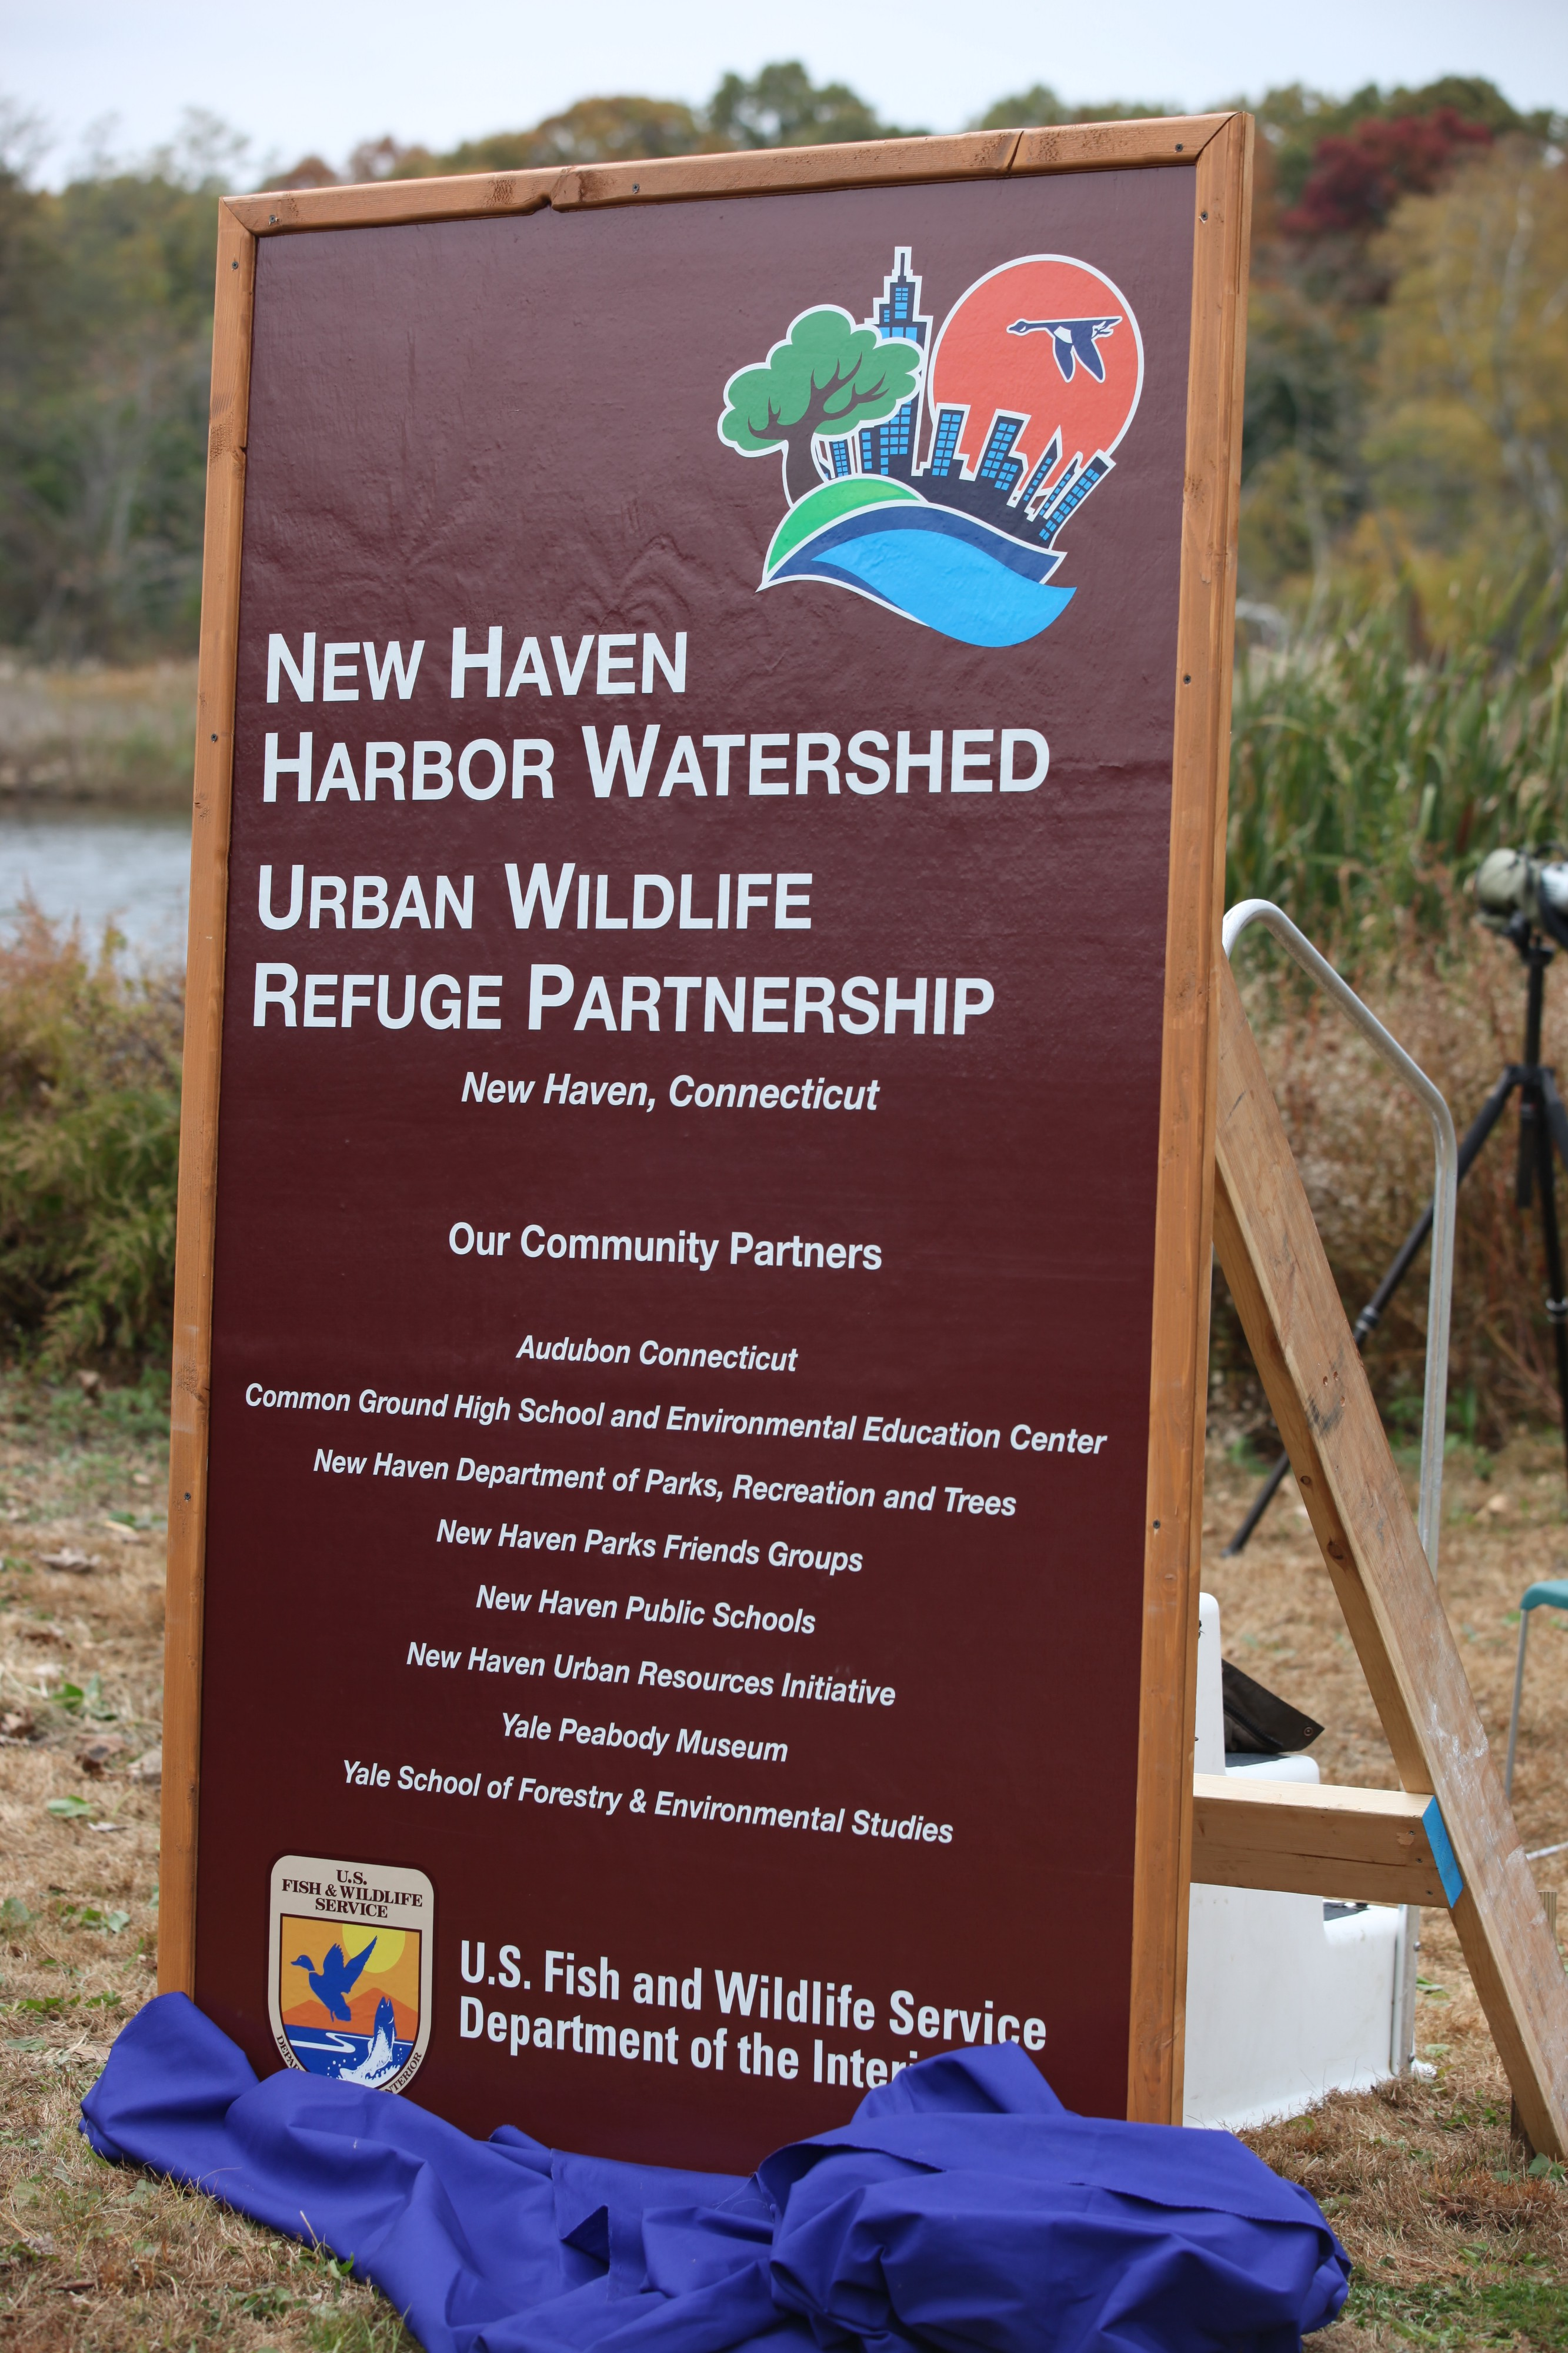 Designation of the Urban Oases project in the New Haven Harbor Watershed